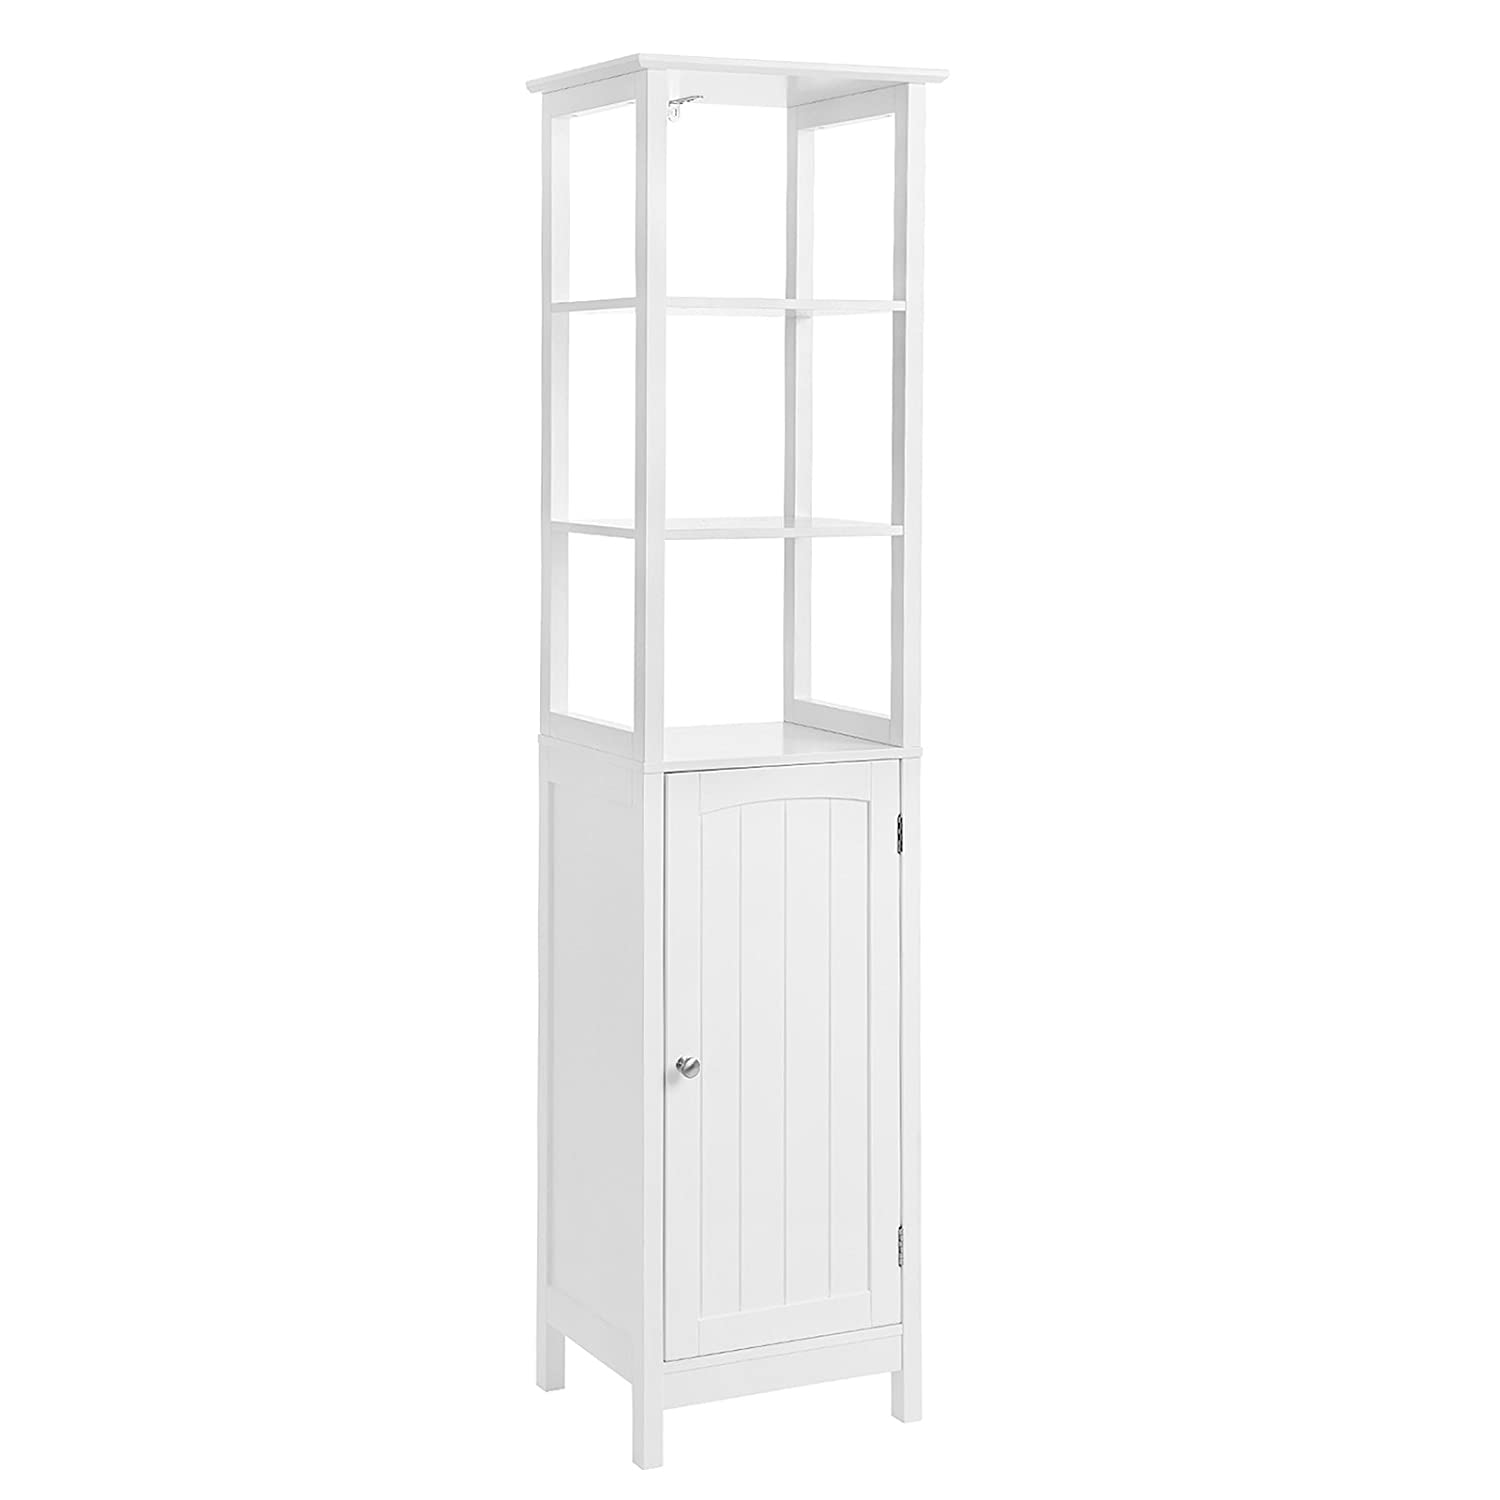 VASAGLE Floor Cabinet, Multifunctional Bathroom Storage Cabinet with 3 Tier Shelf, Free Standing Linen Tower, Wooden, White UBBC63WT